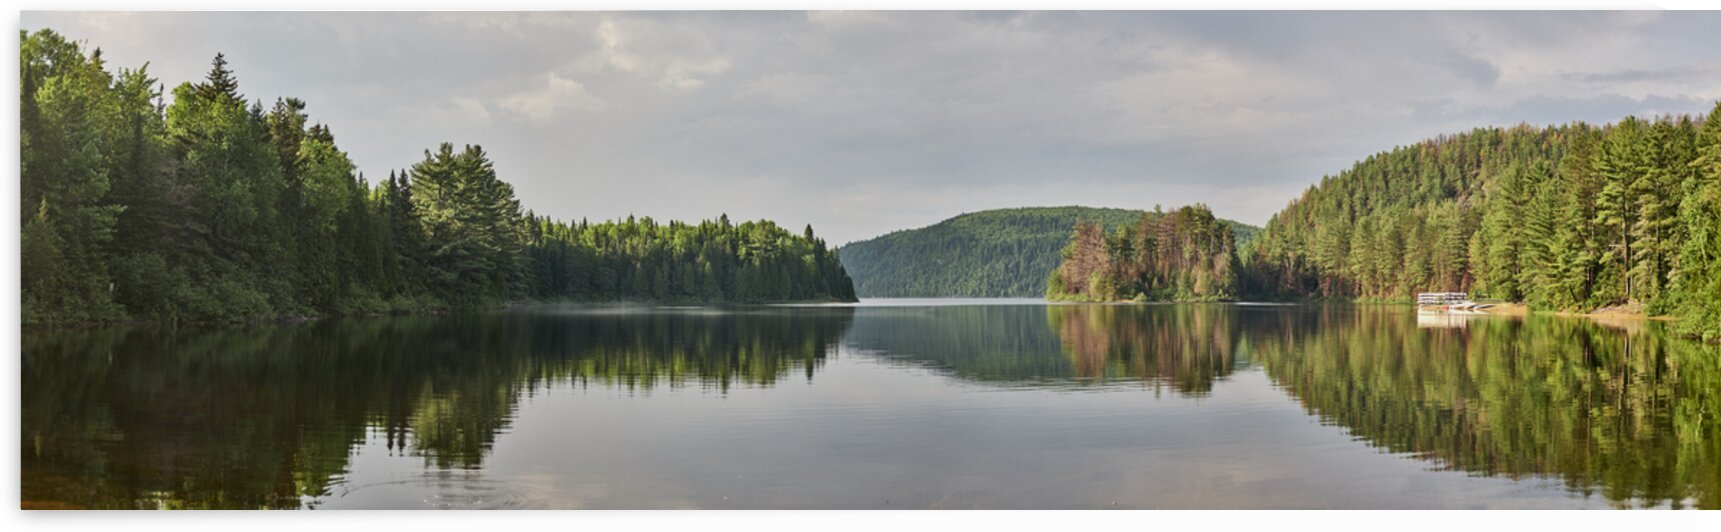 Lake in rural Quebec Canada by Atelier Knox